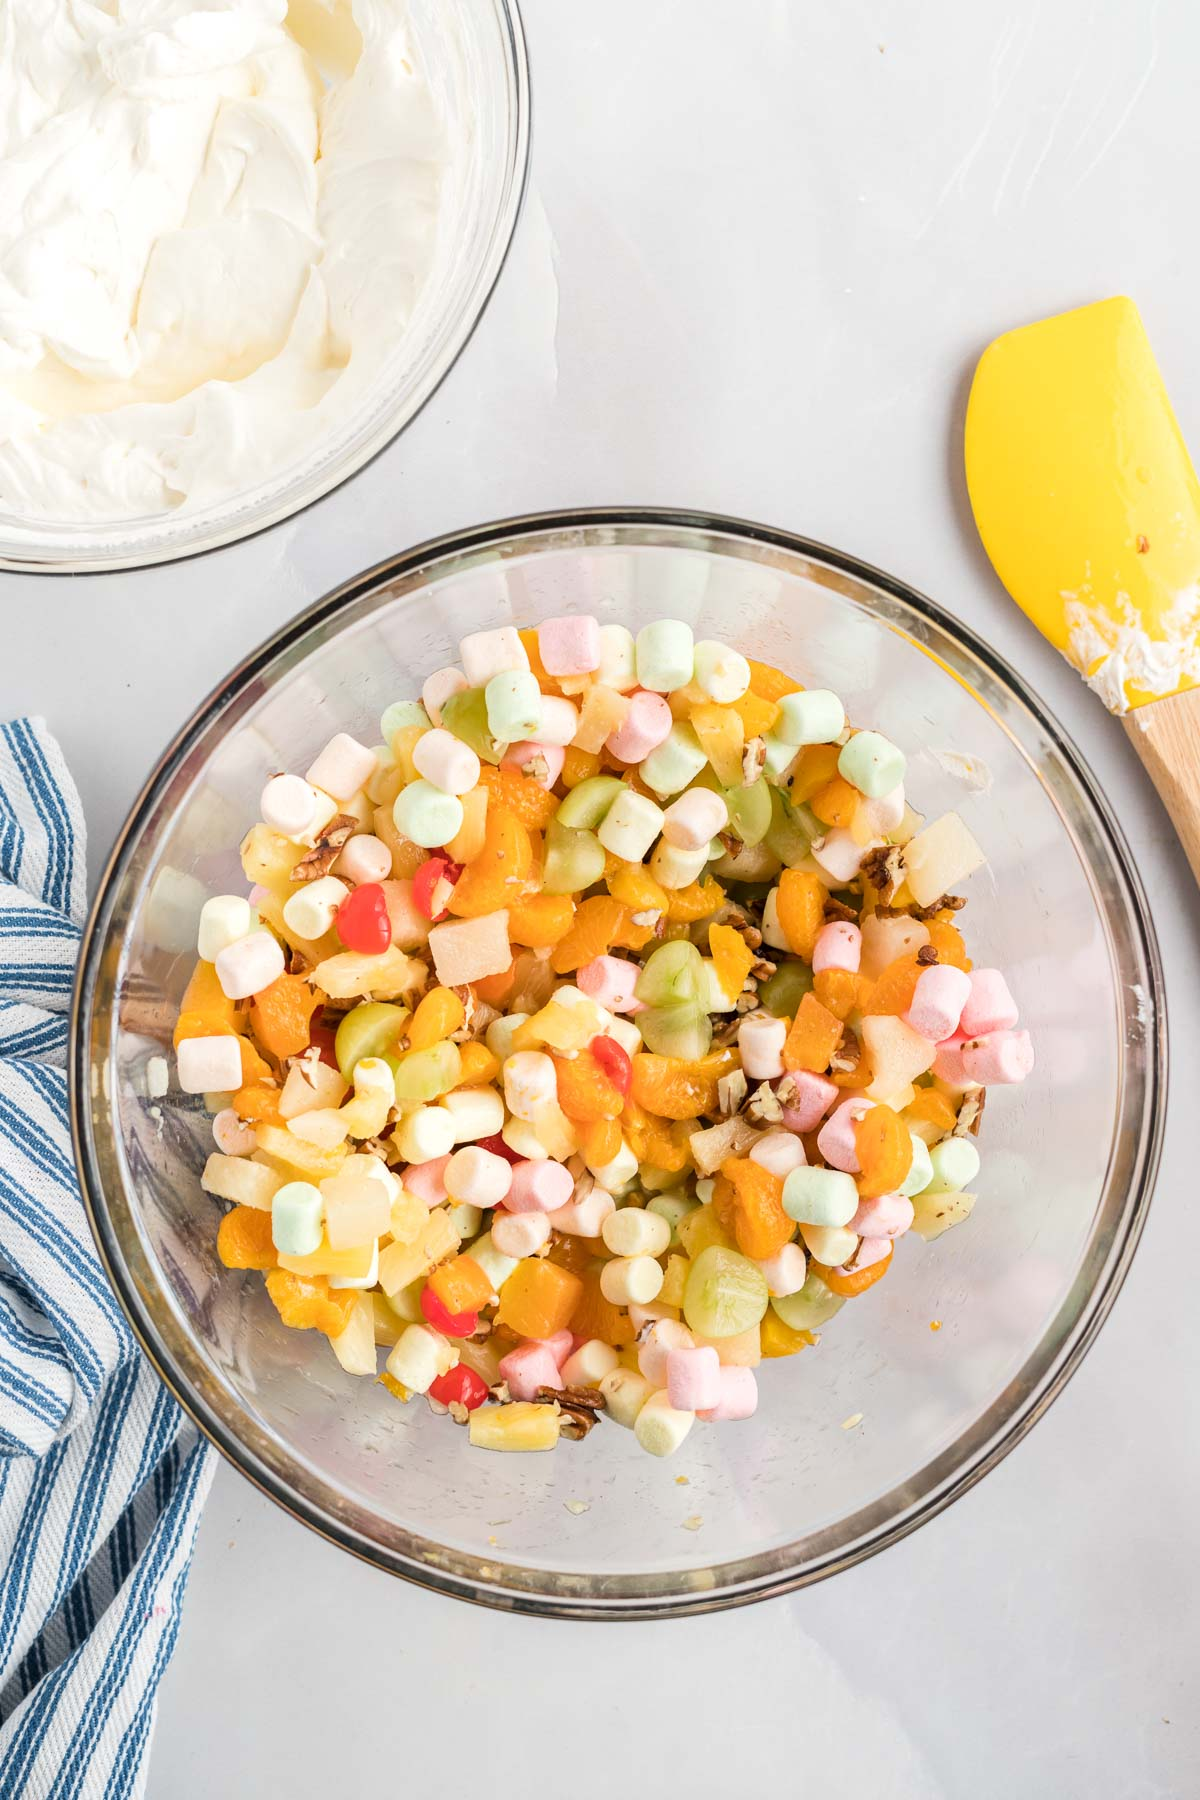 Fruit,marshmallows and nuts mixed in a large bowl.